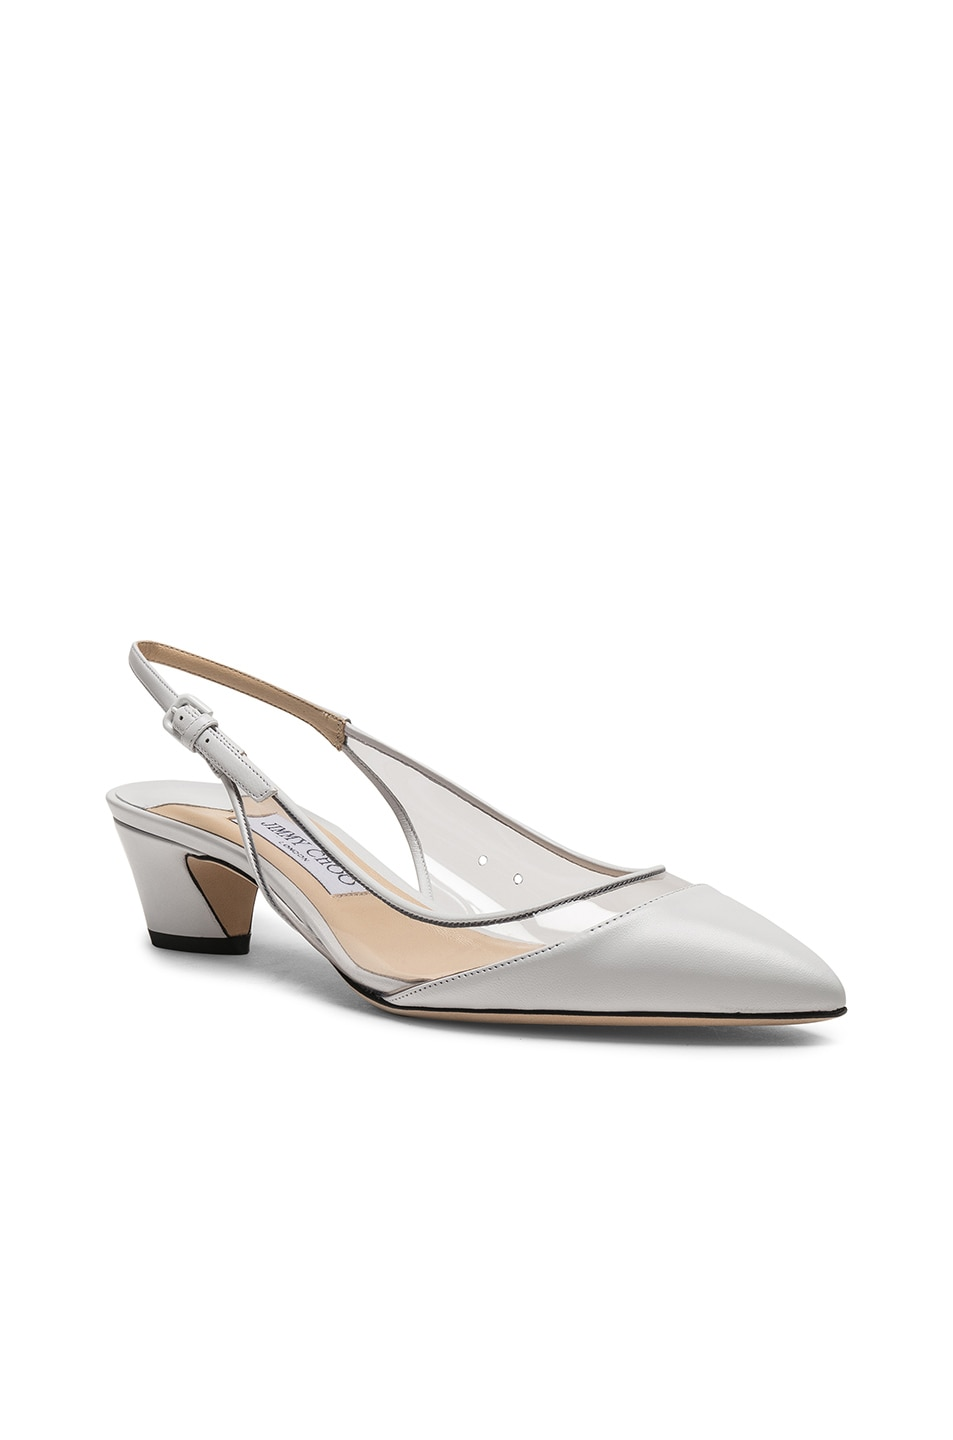 Image 2 of Jimmy Choo Gemma 40 Leather Plexi Slingback in White & Clear